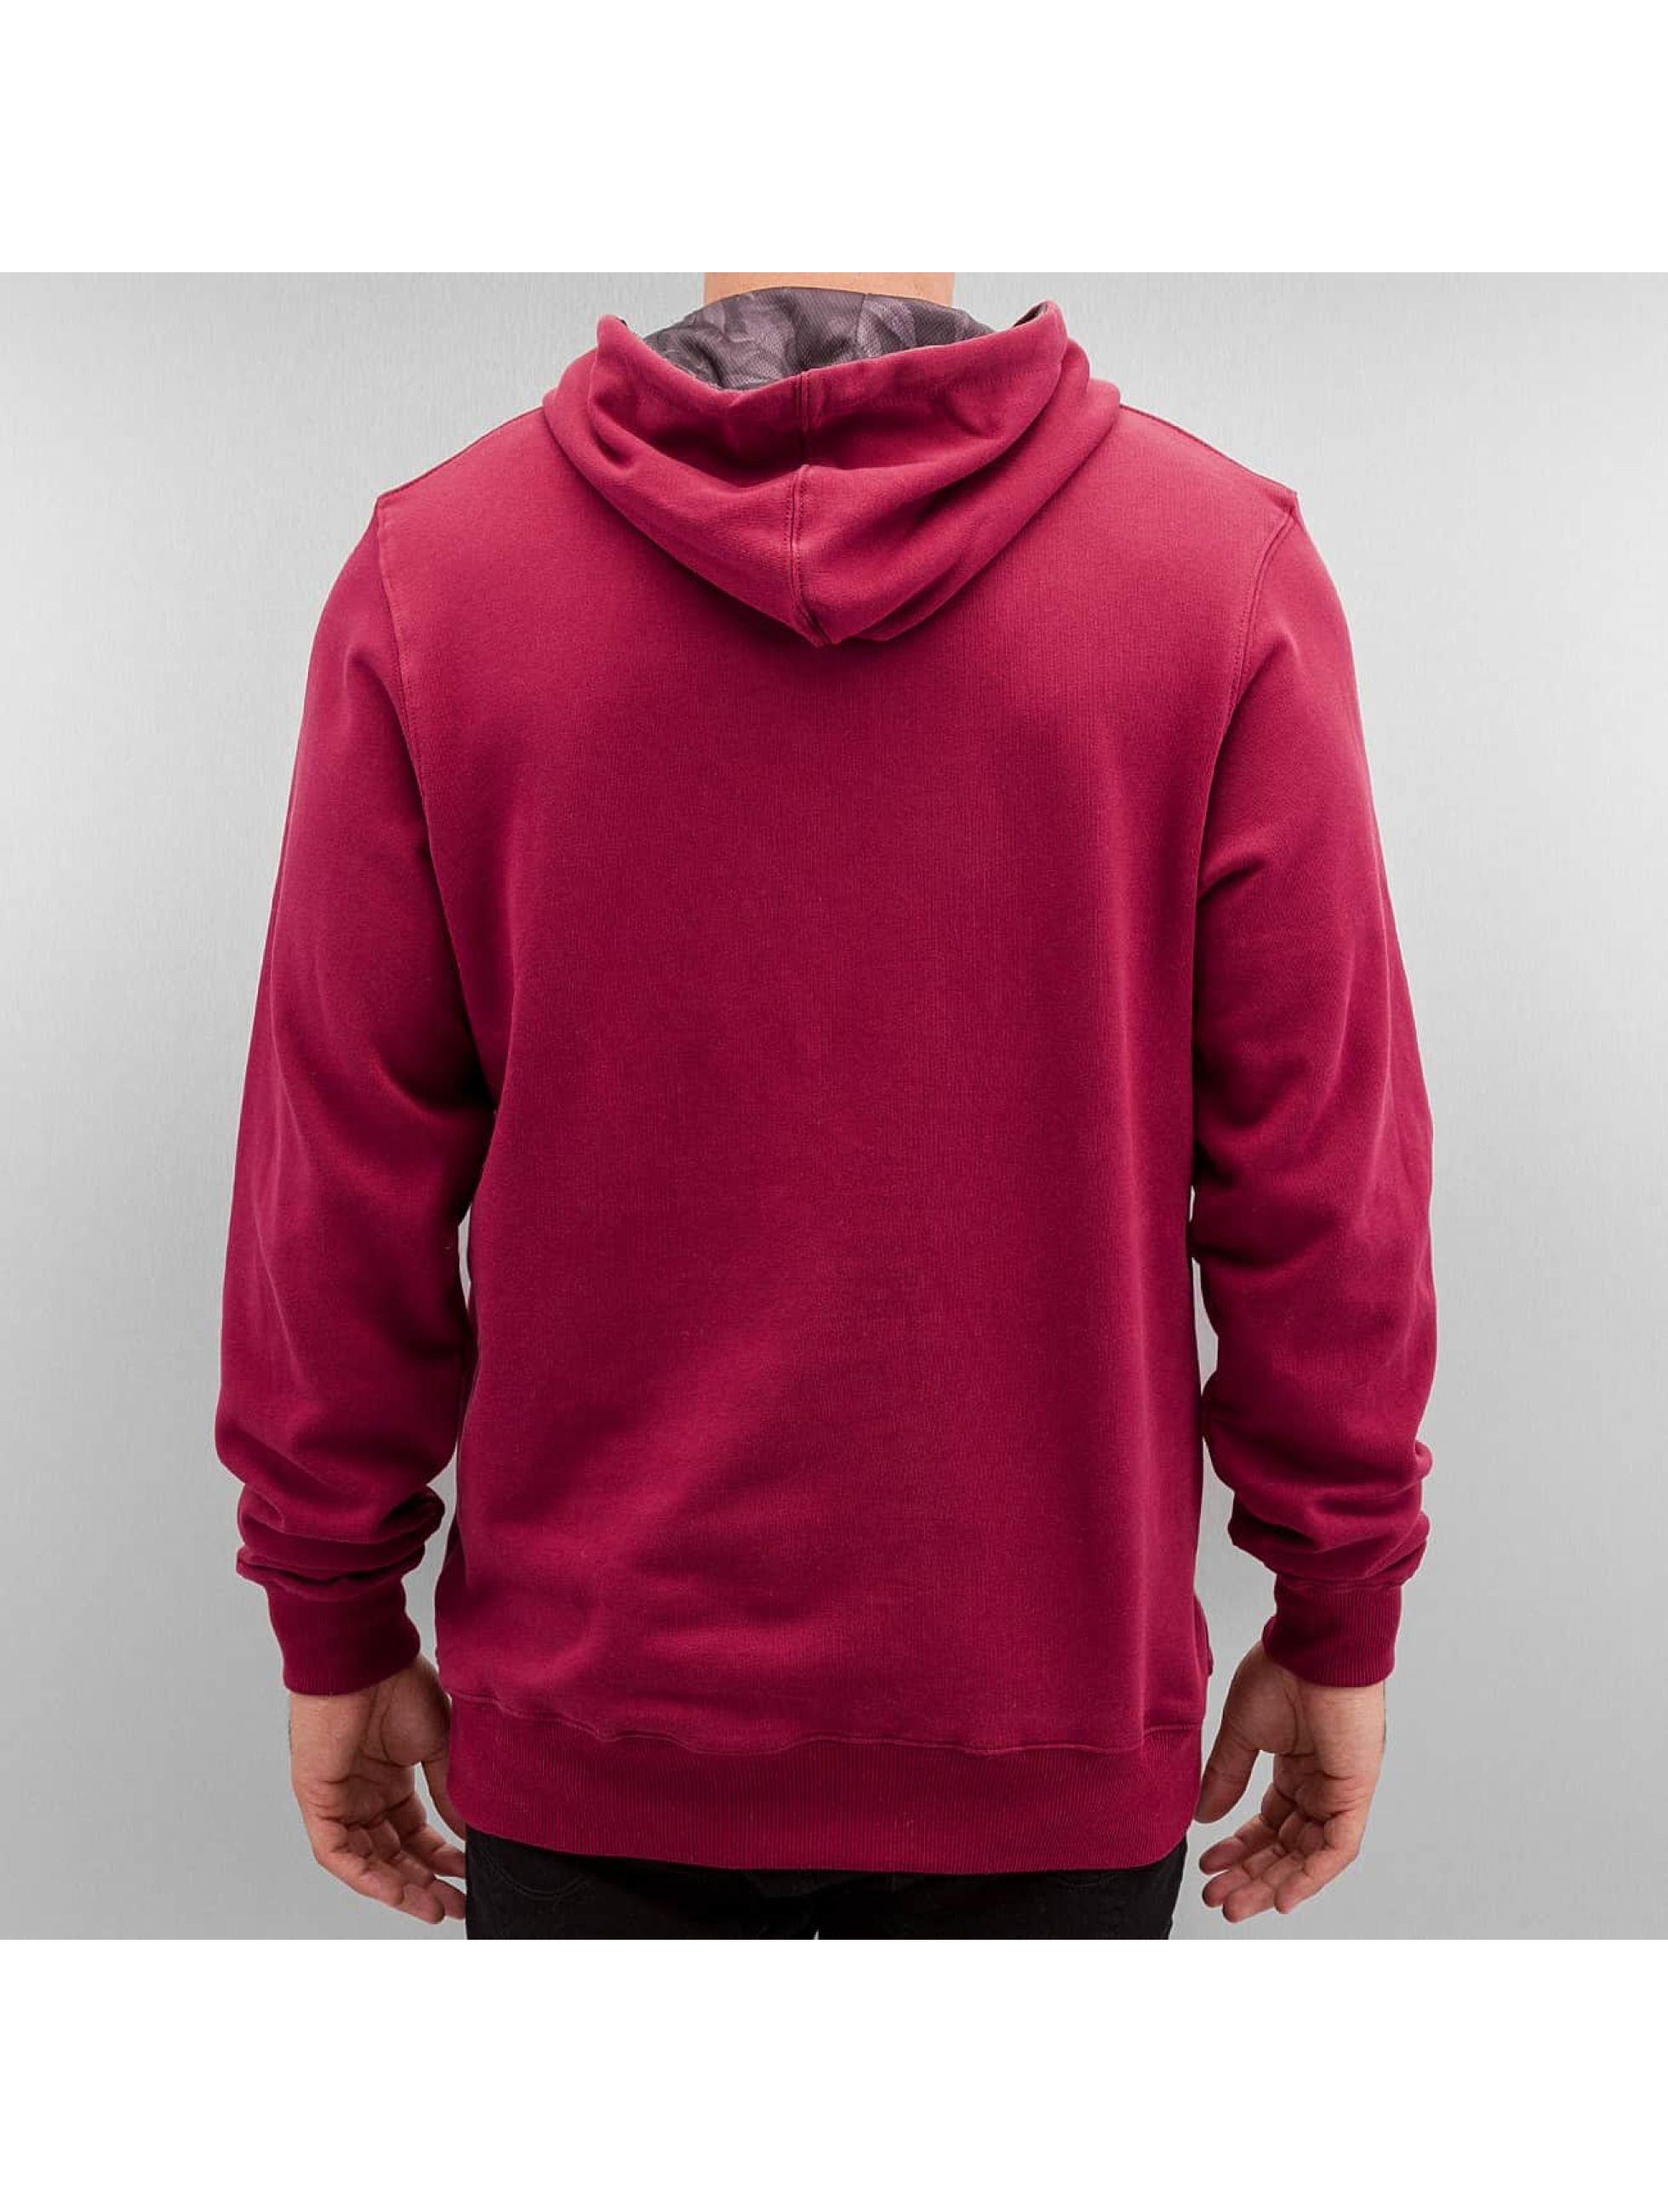 Cayler & Sons Hoodie Green Label B&M red